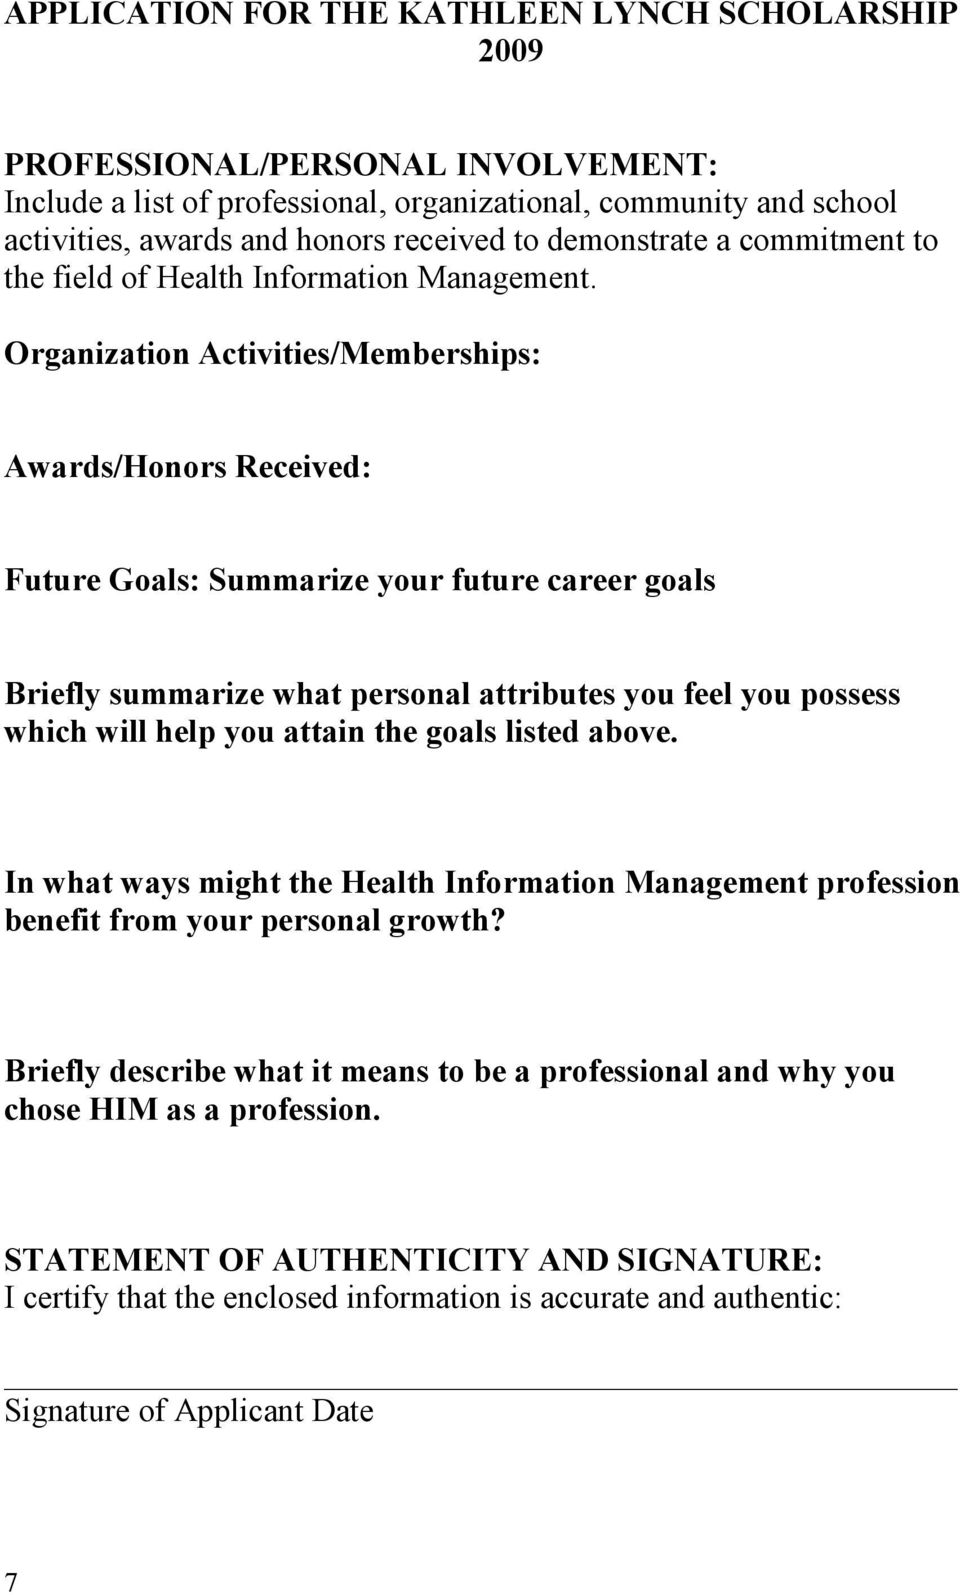 Organization Activities/Memberships: Awards/Honors Received: Future Goals: Summarize your future career goals Briefly summarize what personal attributes you feel you possess which will help you